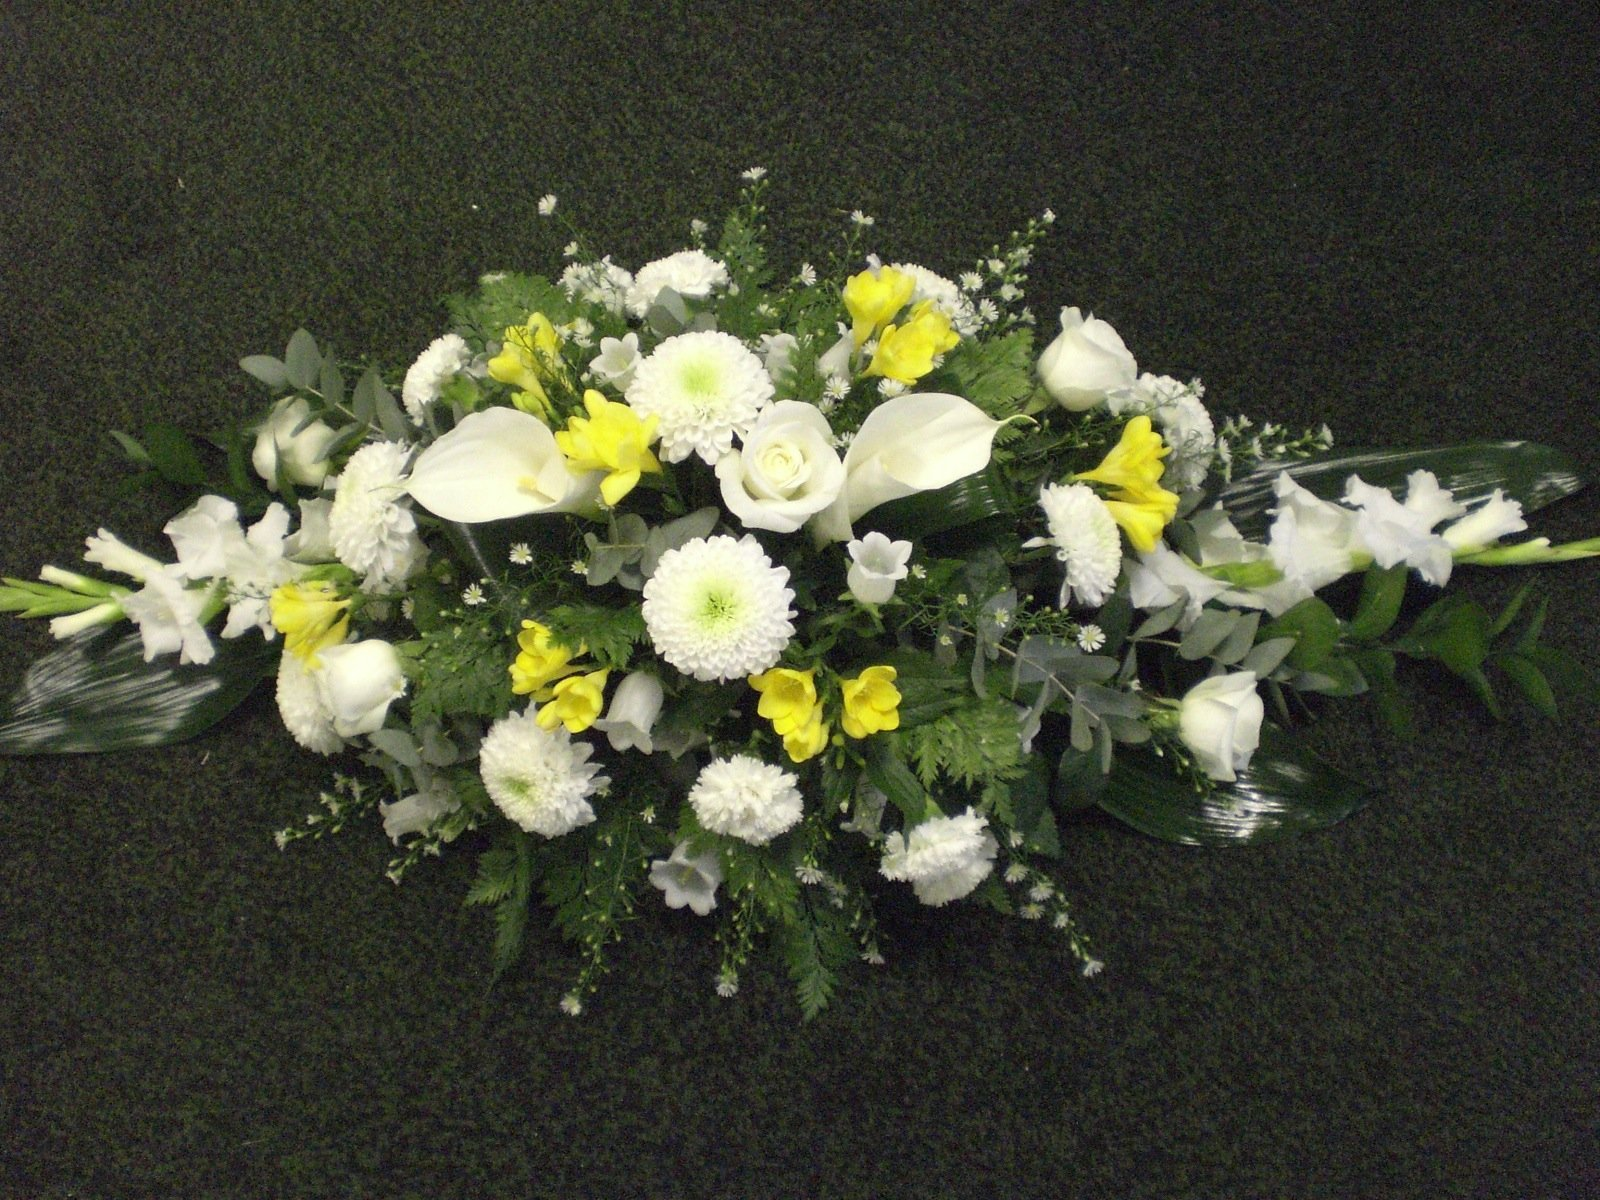 yellow and white flower casket